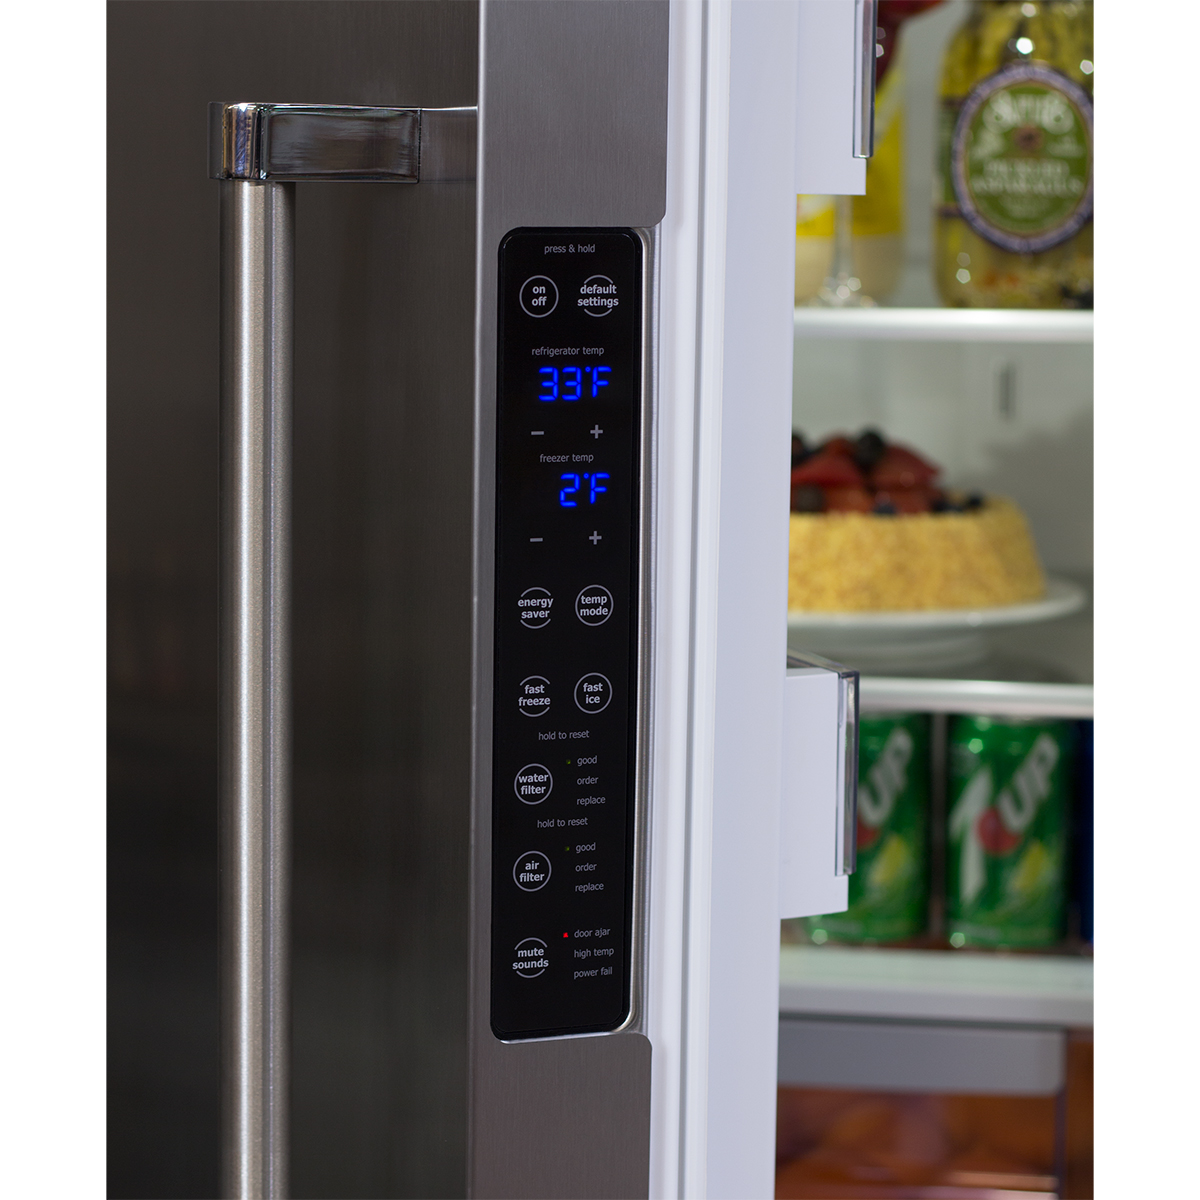 French Door Refrigerator With Bottom Freezer · Marvel Professional 36.  Marvel Professional 36. Marvel Professional 36. Marvel Professional 36